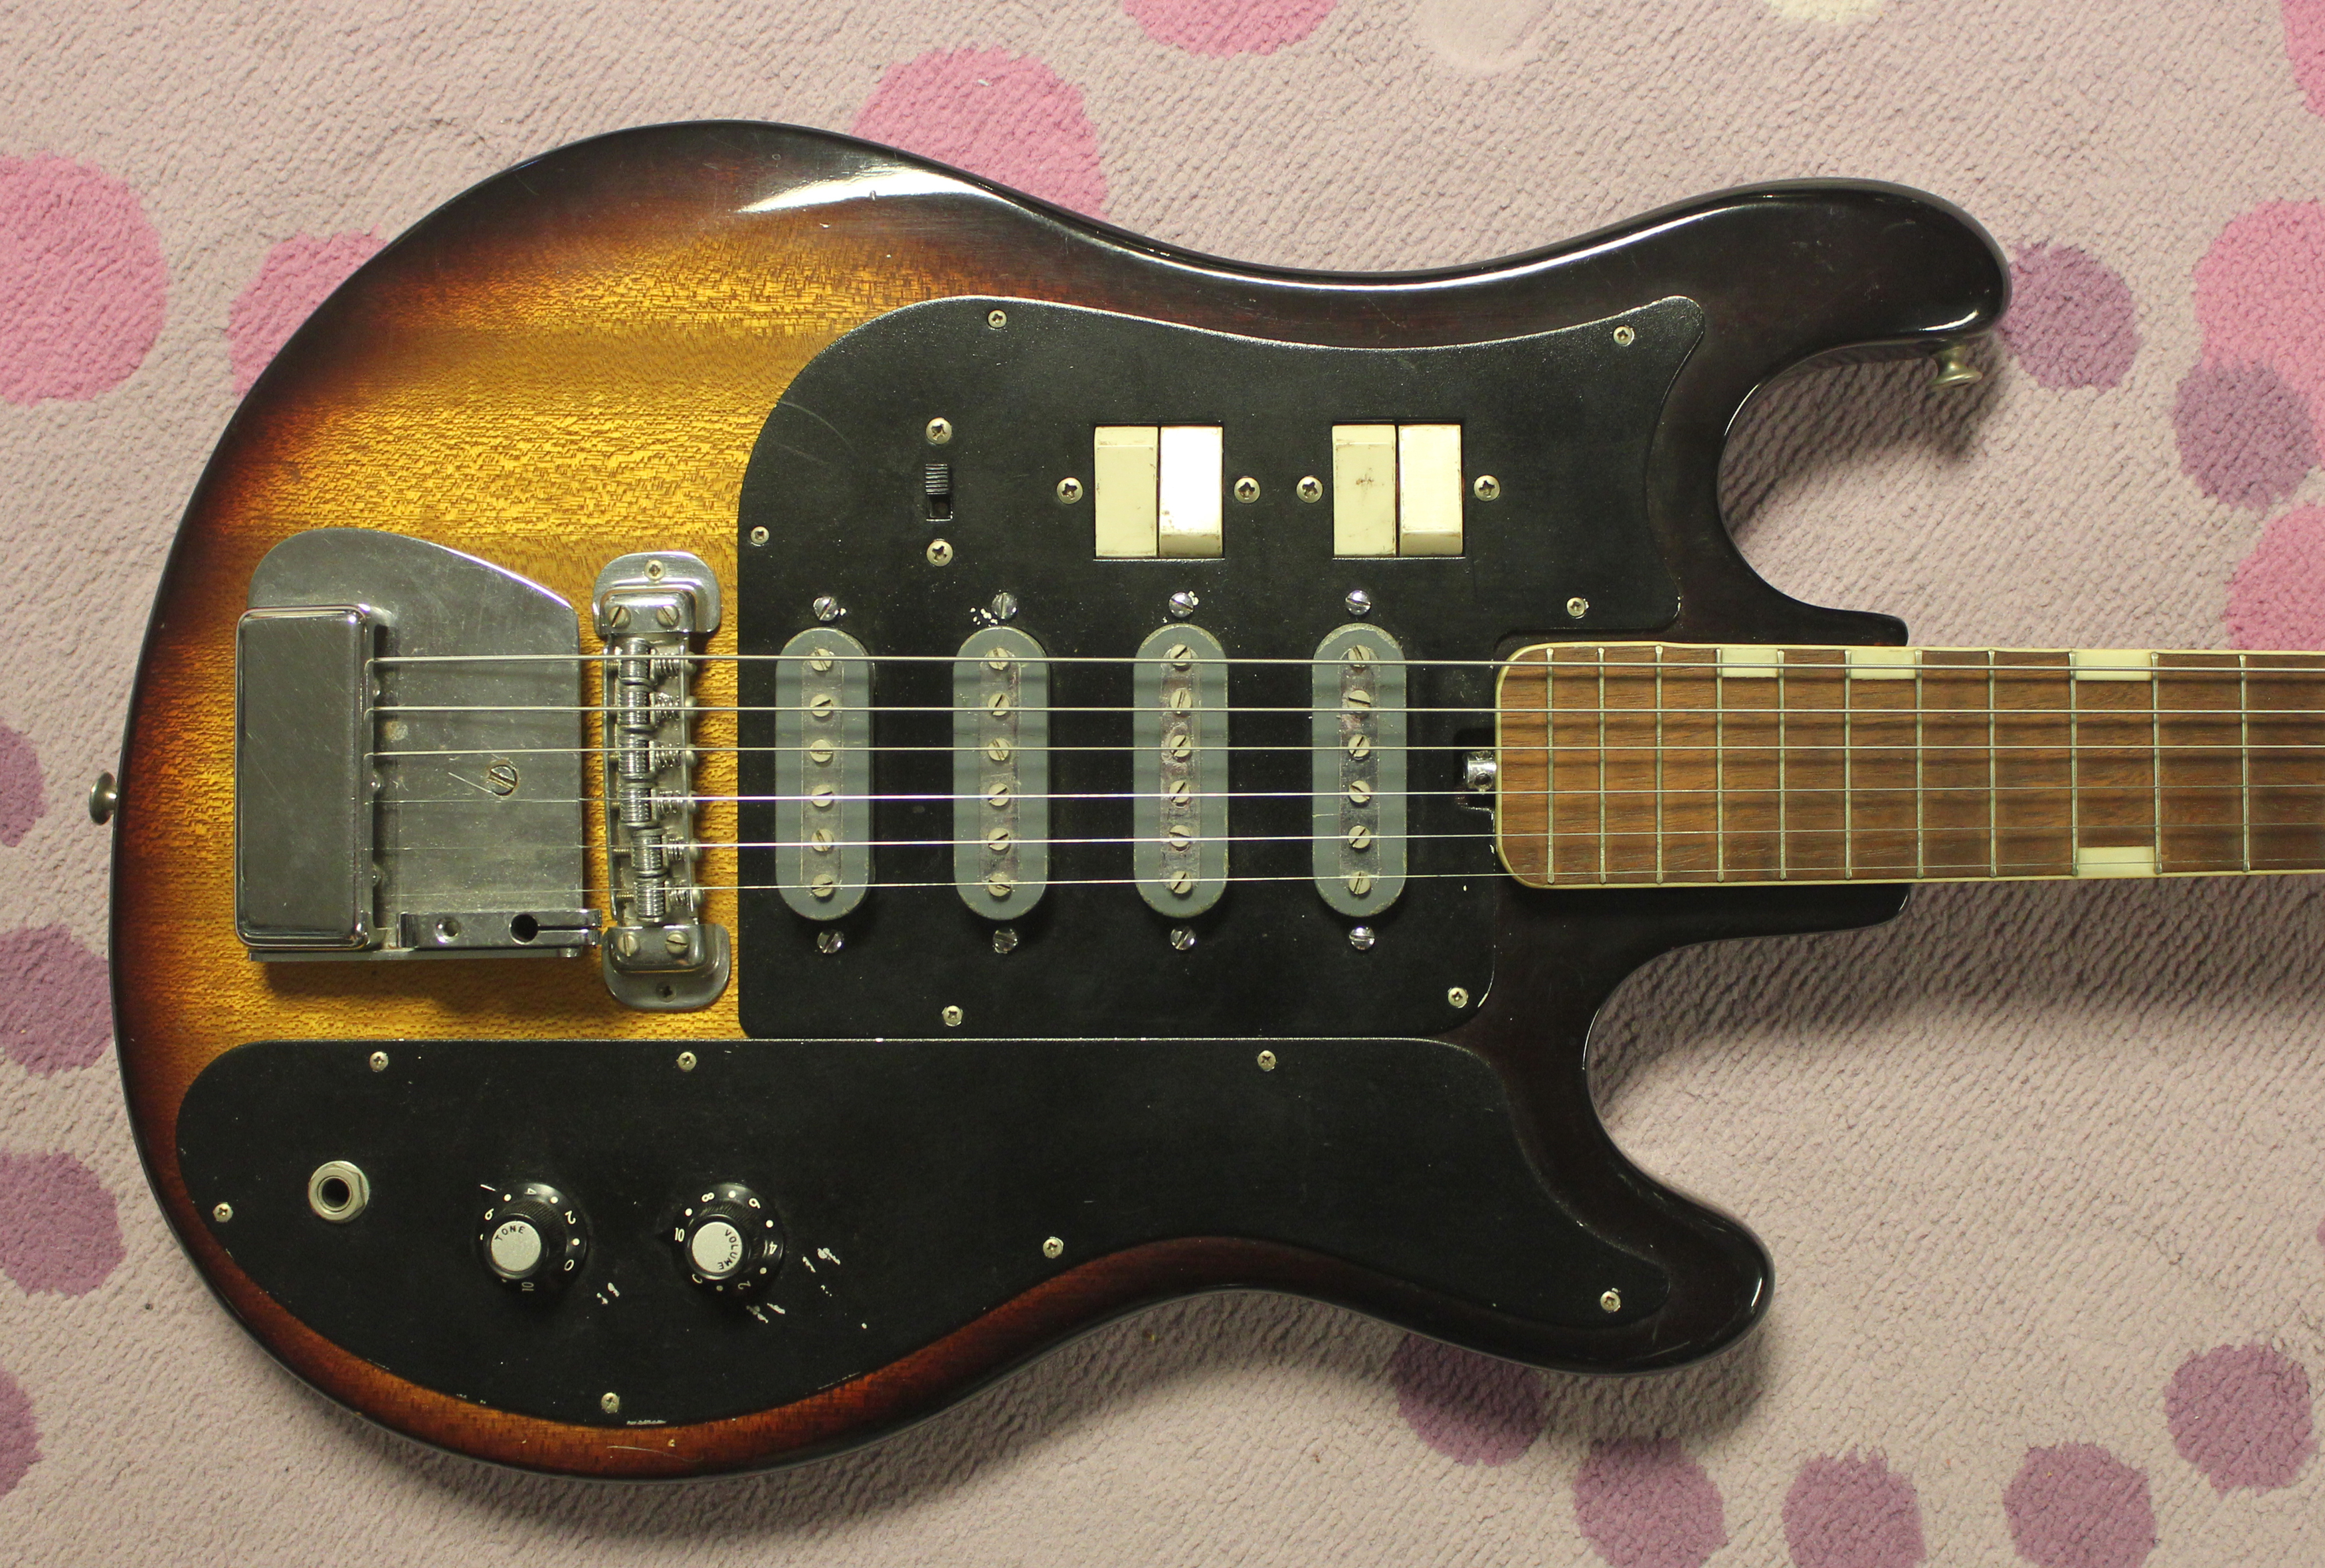 teisco et440 2 the devil in the details 1964 teisco et 440 electric guitar teisco del rey wiring diagram at nearapp.co